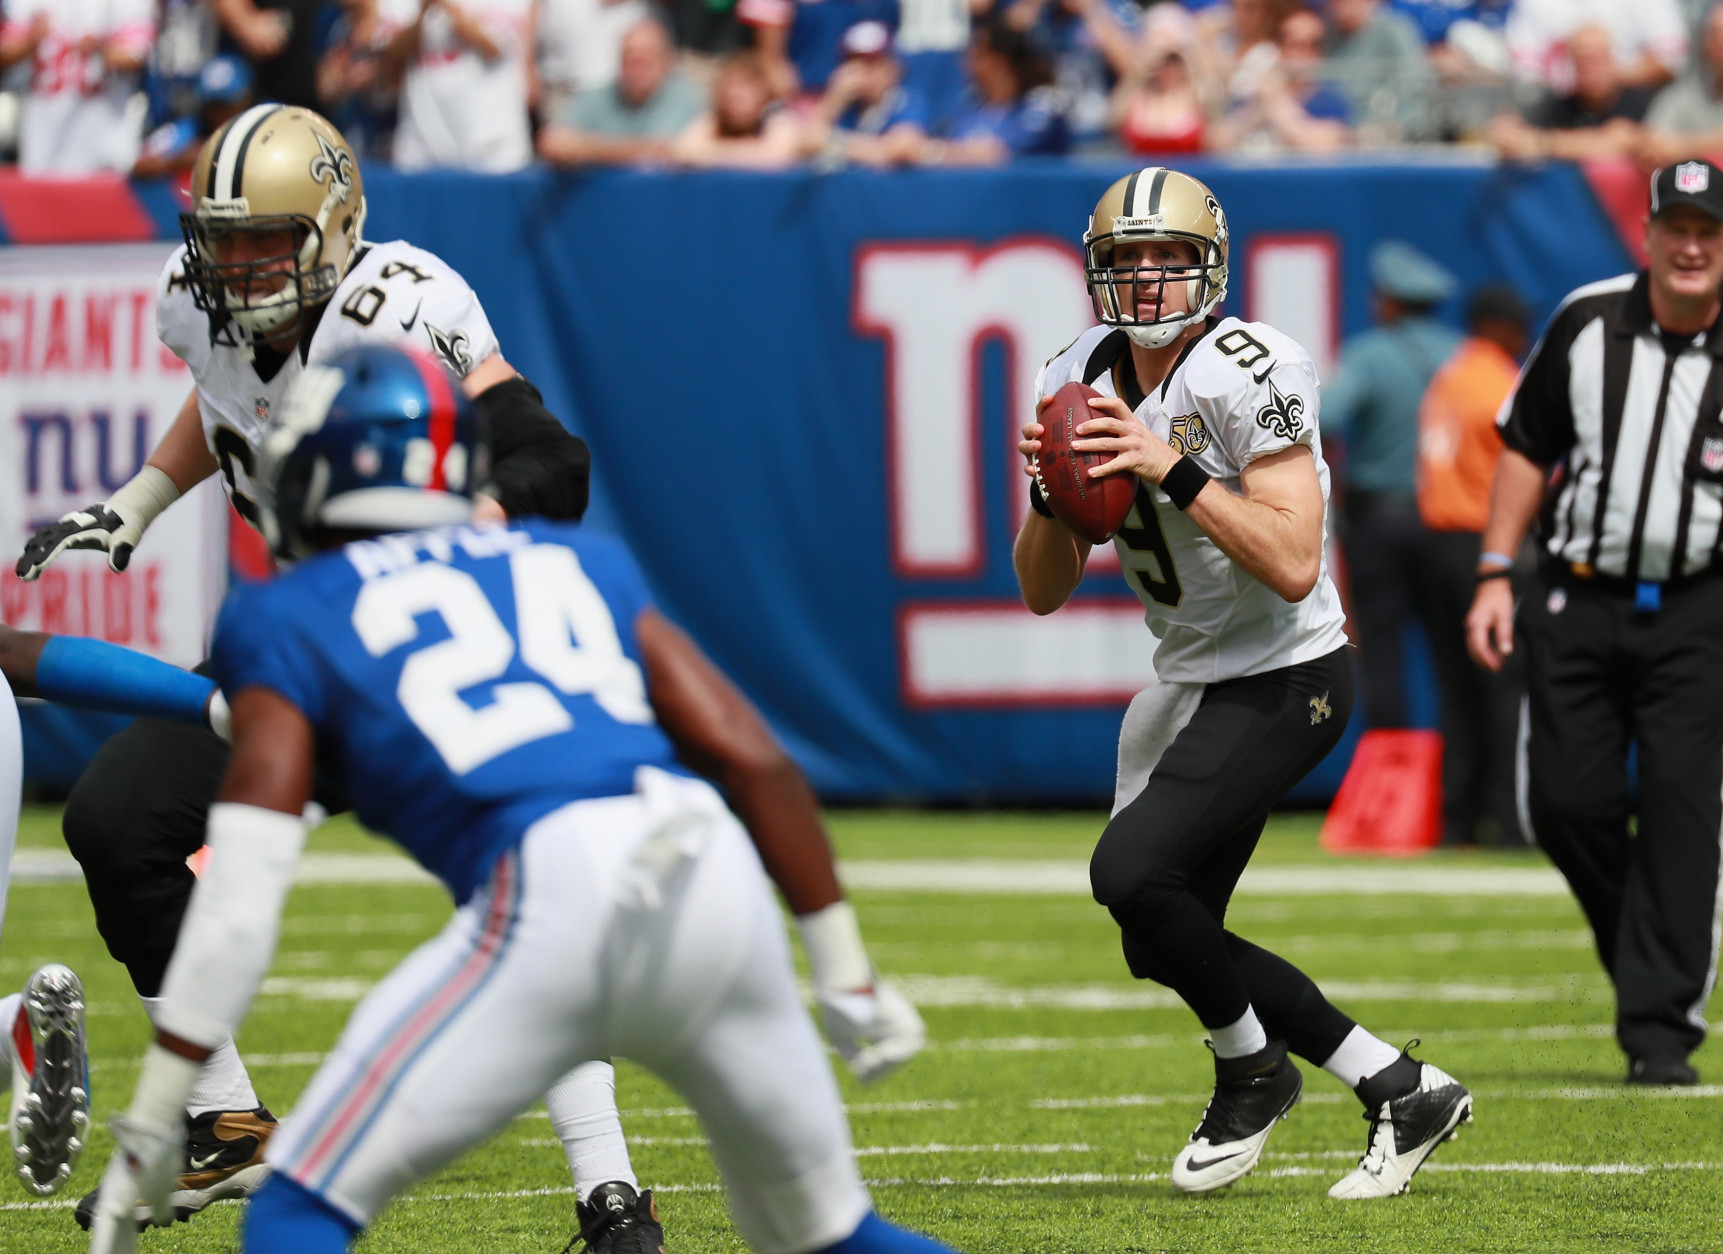 EAST RUTHERFORD, NJ - SEPTEMBER 18: Quarterback  Drew Brees #9 of the New Orleans Saints looks to pass against the New York Giants  during the first quarter at MetLife Stadium on September 18, 2016 in East Rutherford, New Jersey.  (Photo by Michael Reaves/Getty Images)